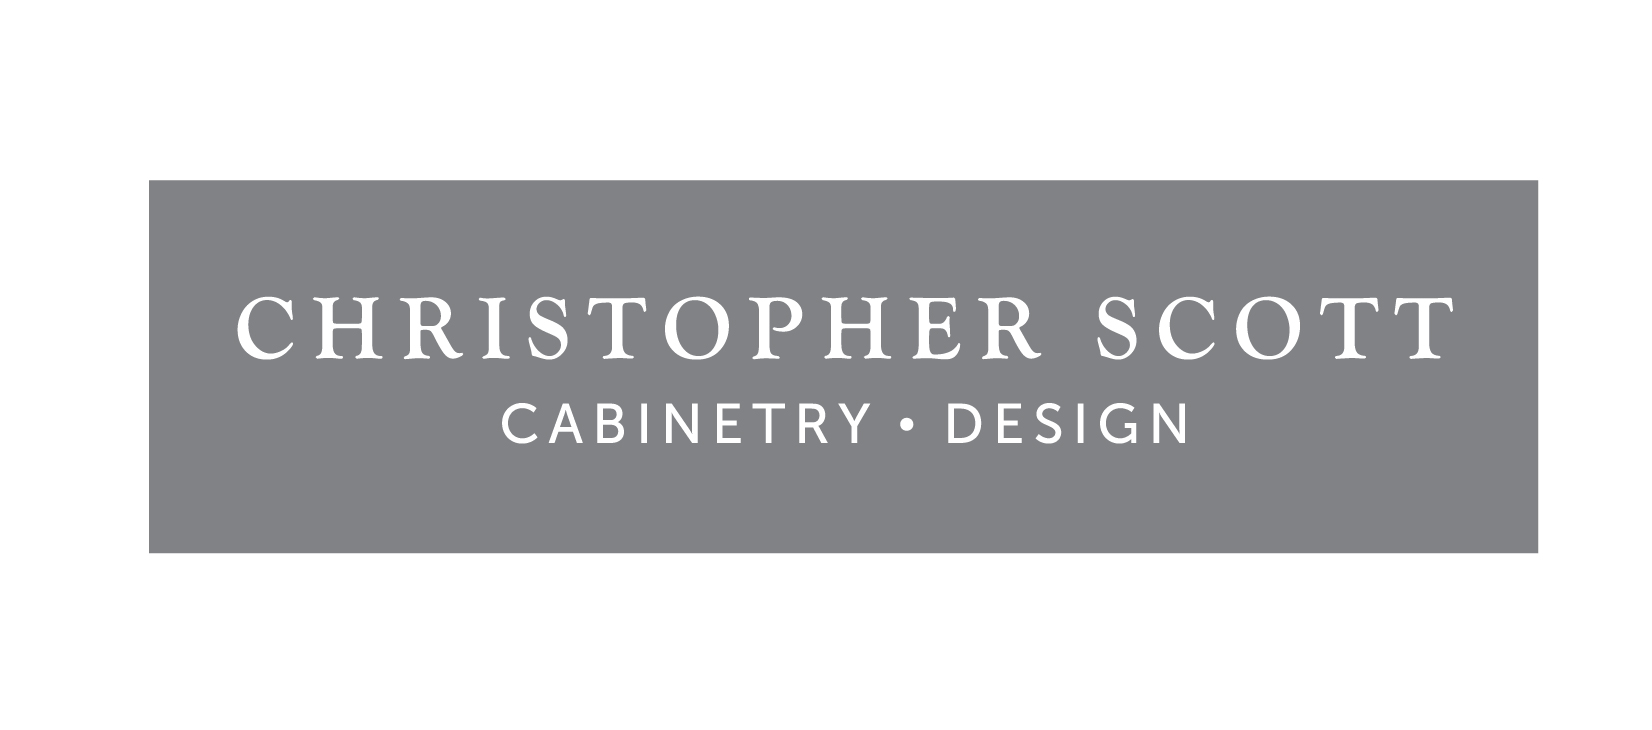 Christopher Scott Cabinetry image